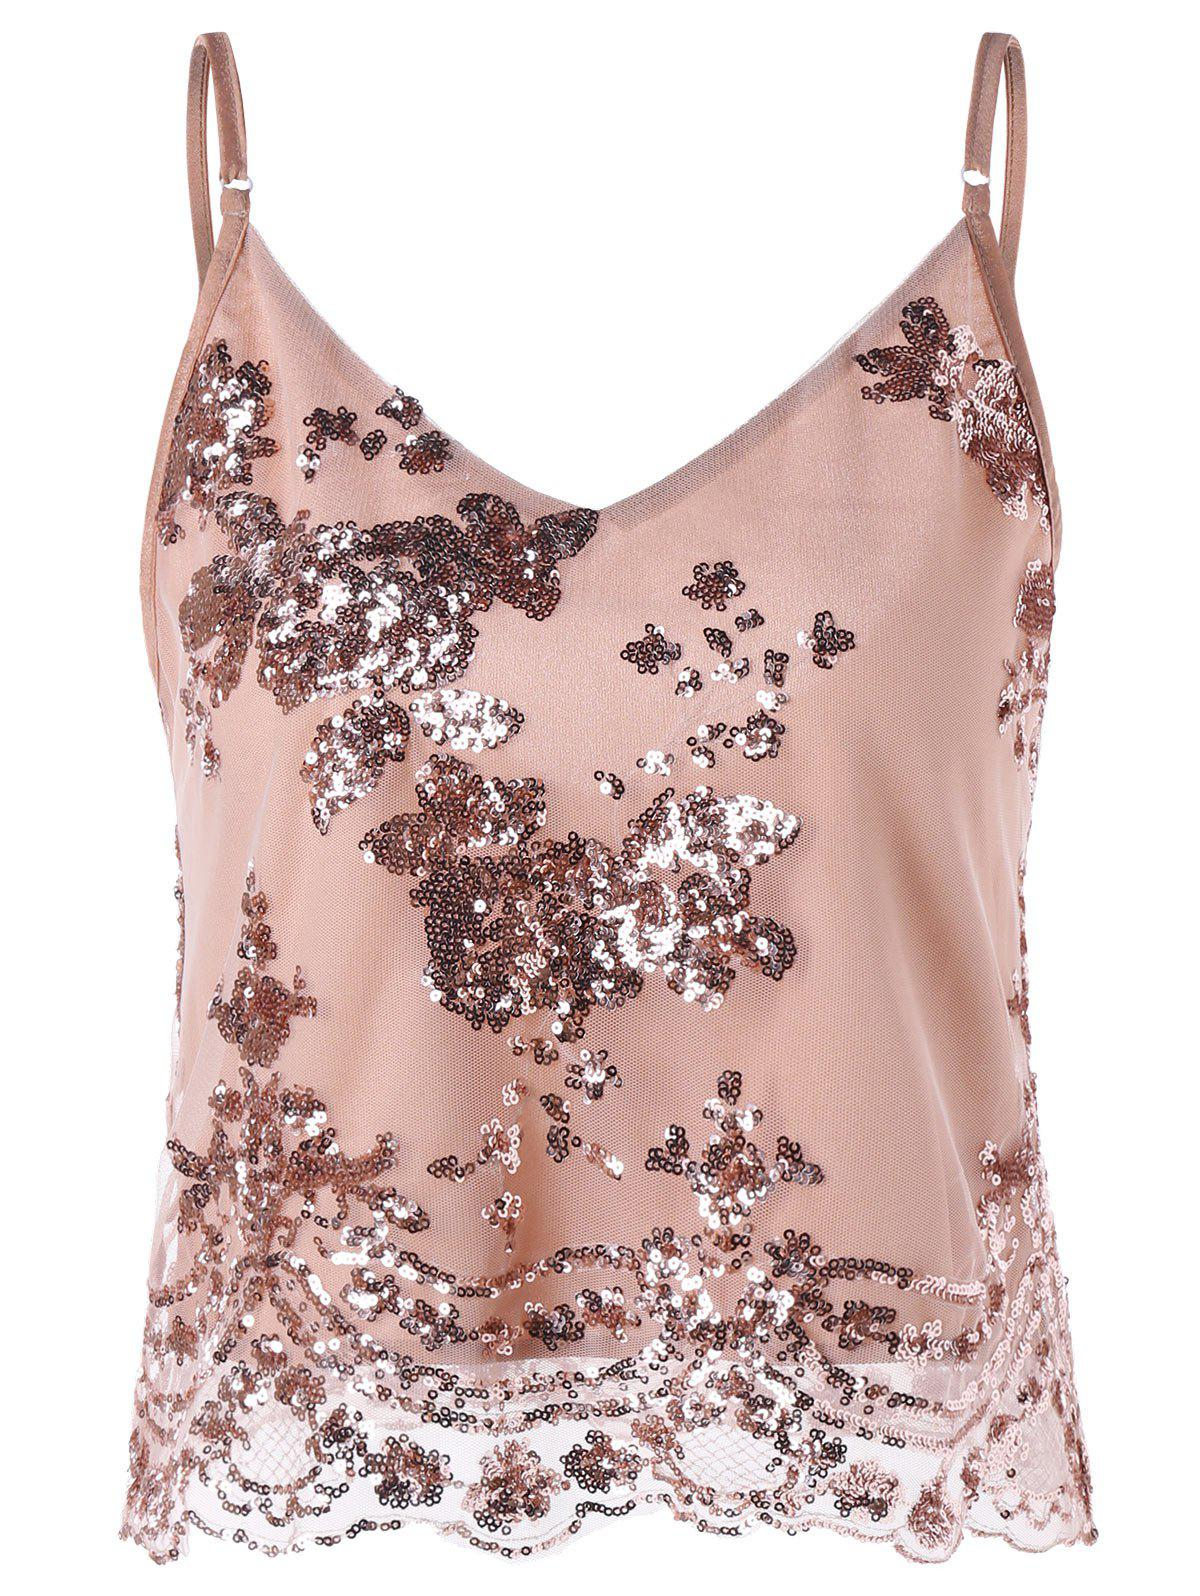 Glitter Cropped Slip Top cropped wide sleeve top